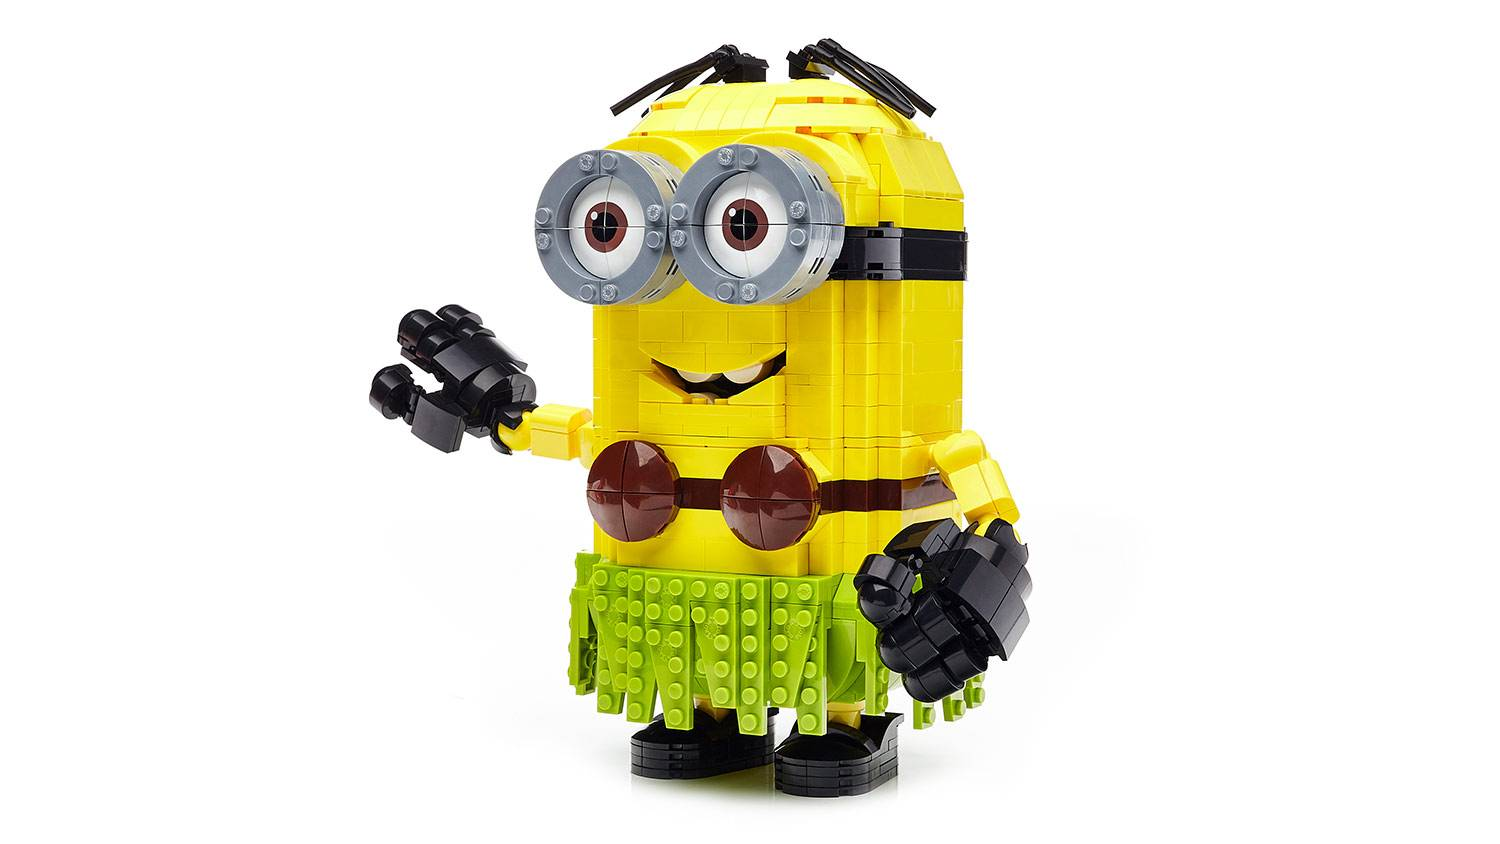 Luau Dave Build-A-Minion